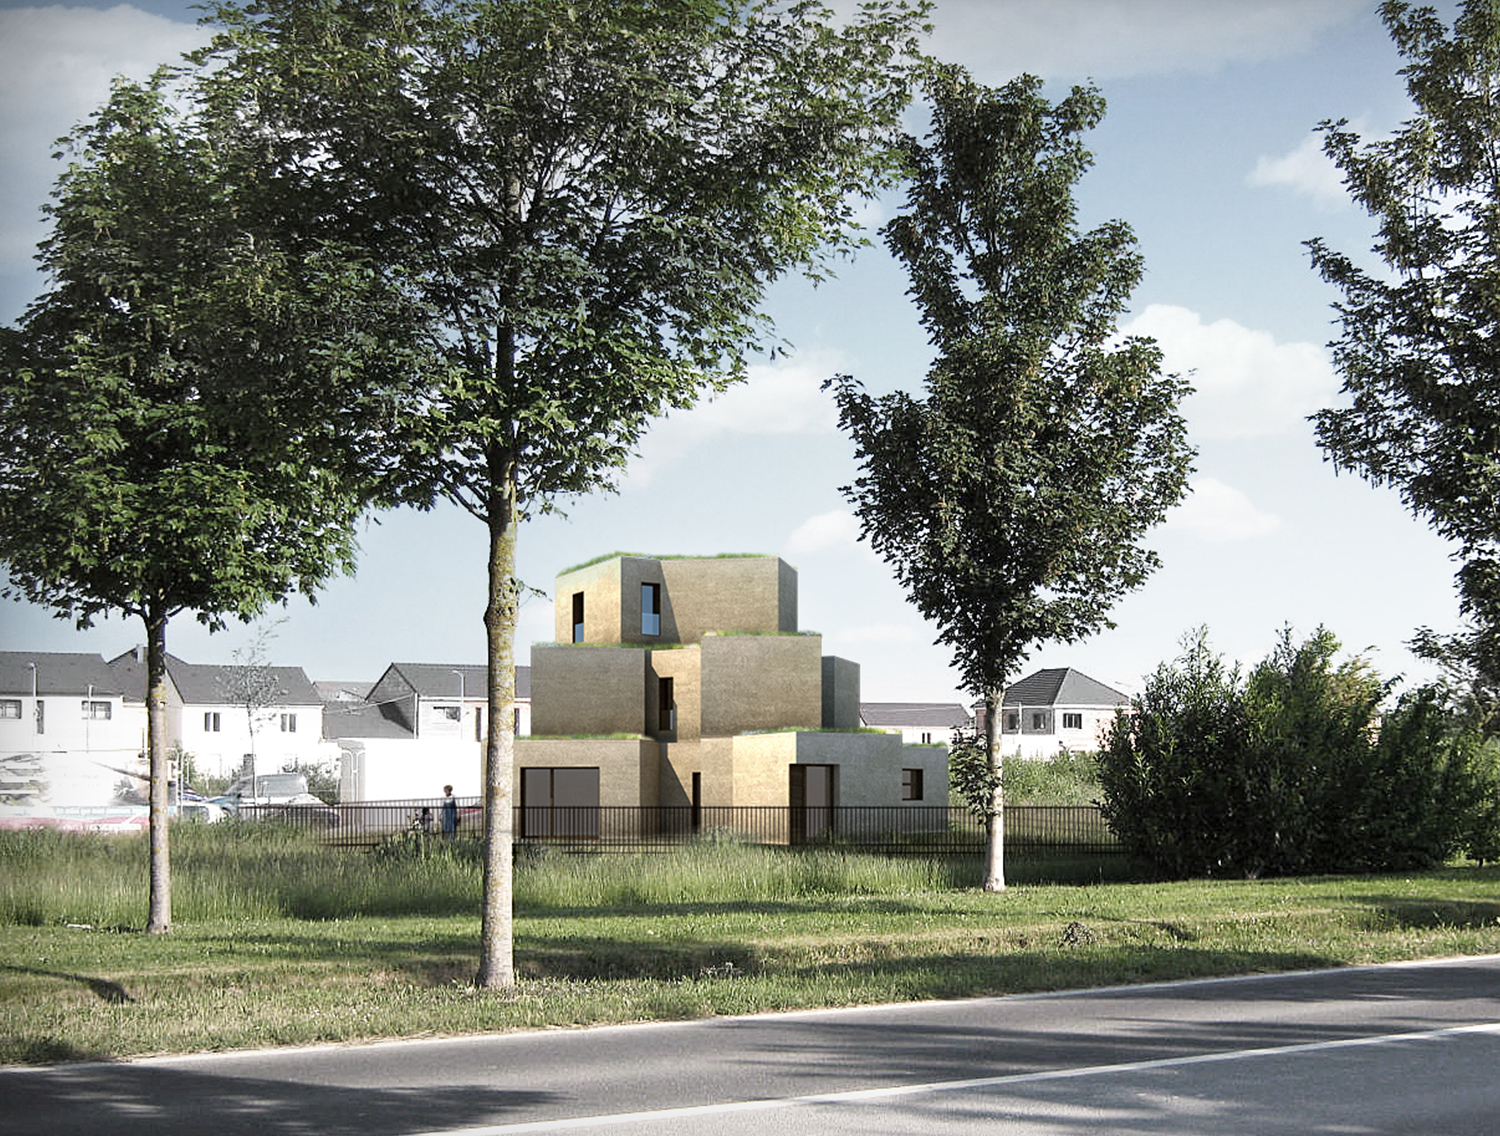 bldg - SEPT. 2018 | Façade prototypes have been delivered to the construction site of the MAISON AFRIQUE near Reims, France